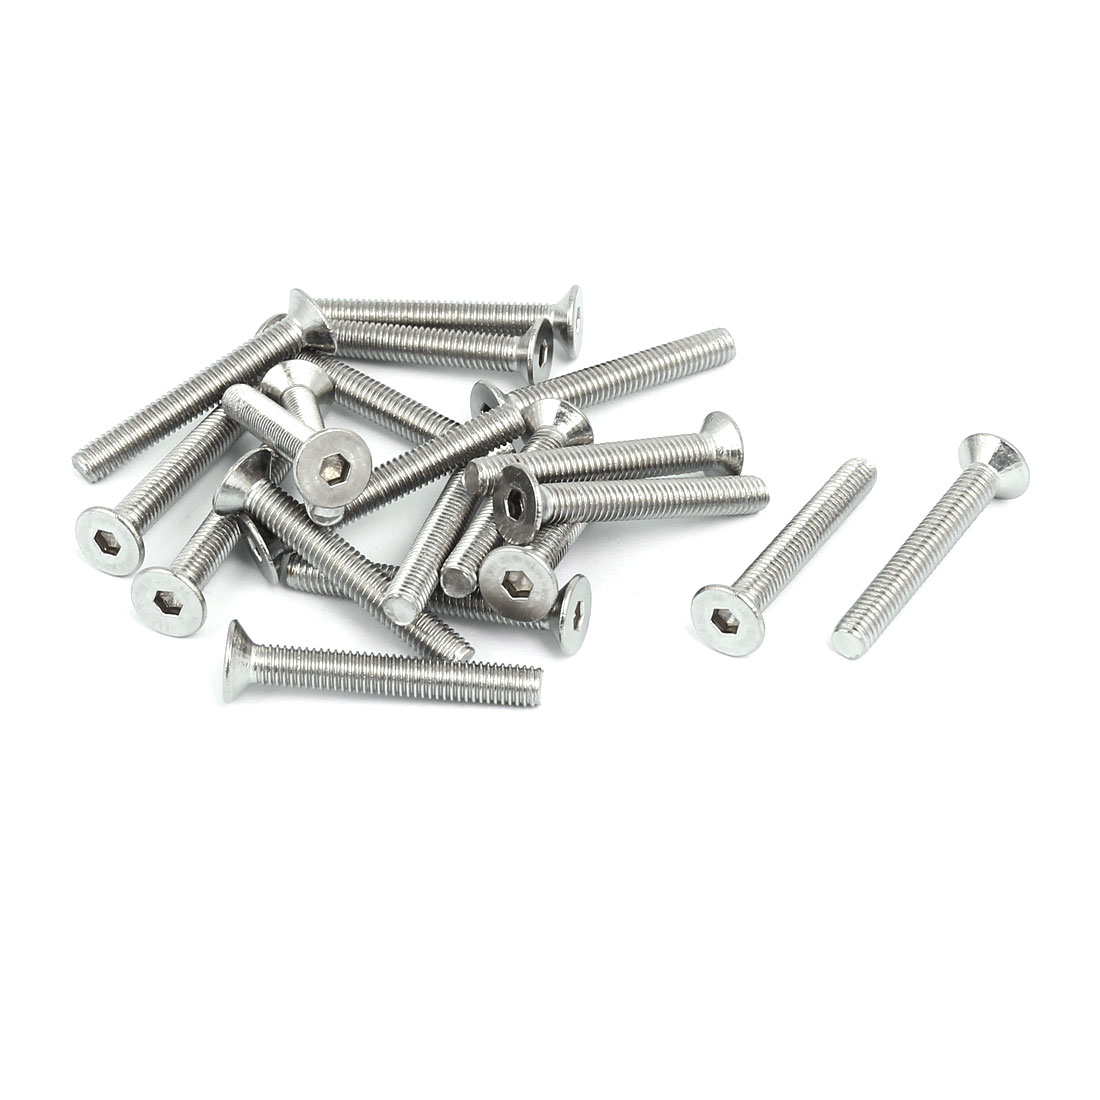 M5x35mm 304 Stainless Steel Countersunk Flat Head Hex Socket Screws DIN7991 20pcs